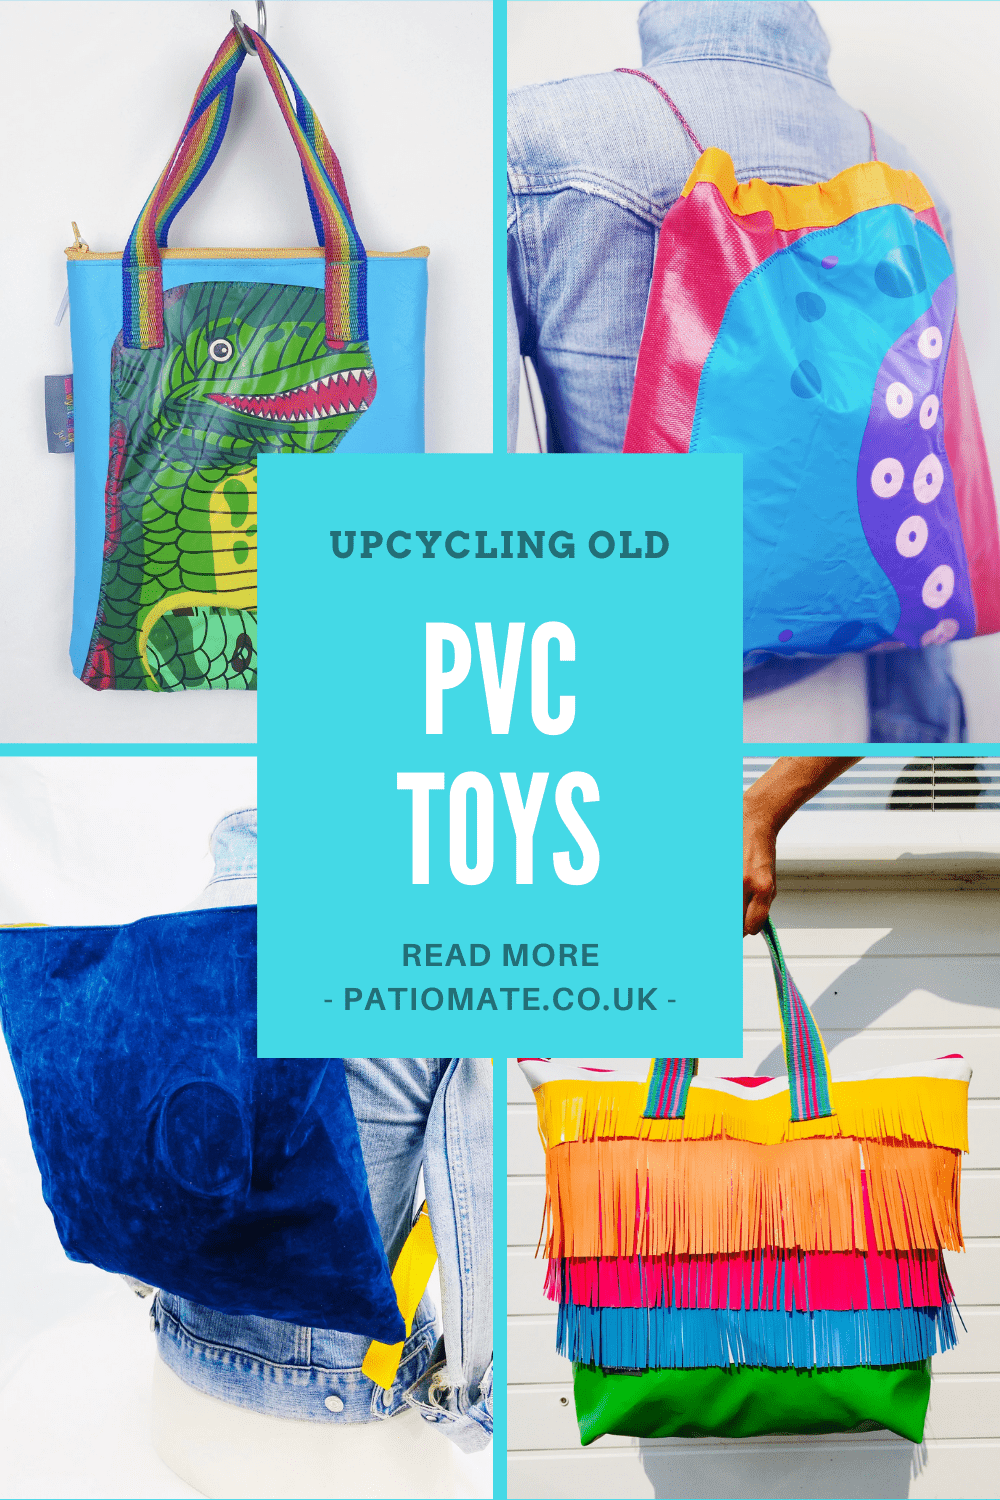 Upcycling old PVC Toys